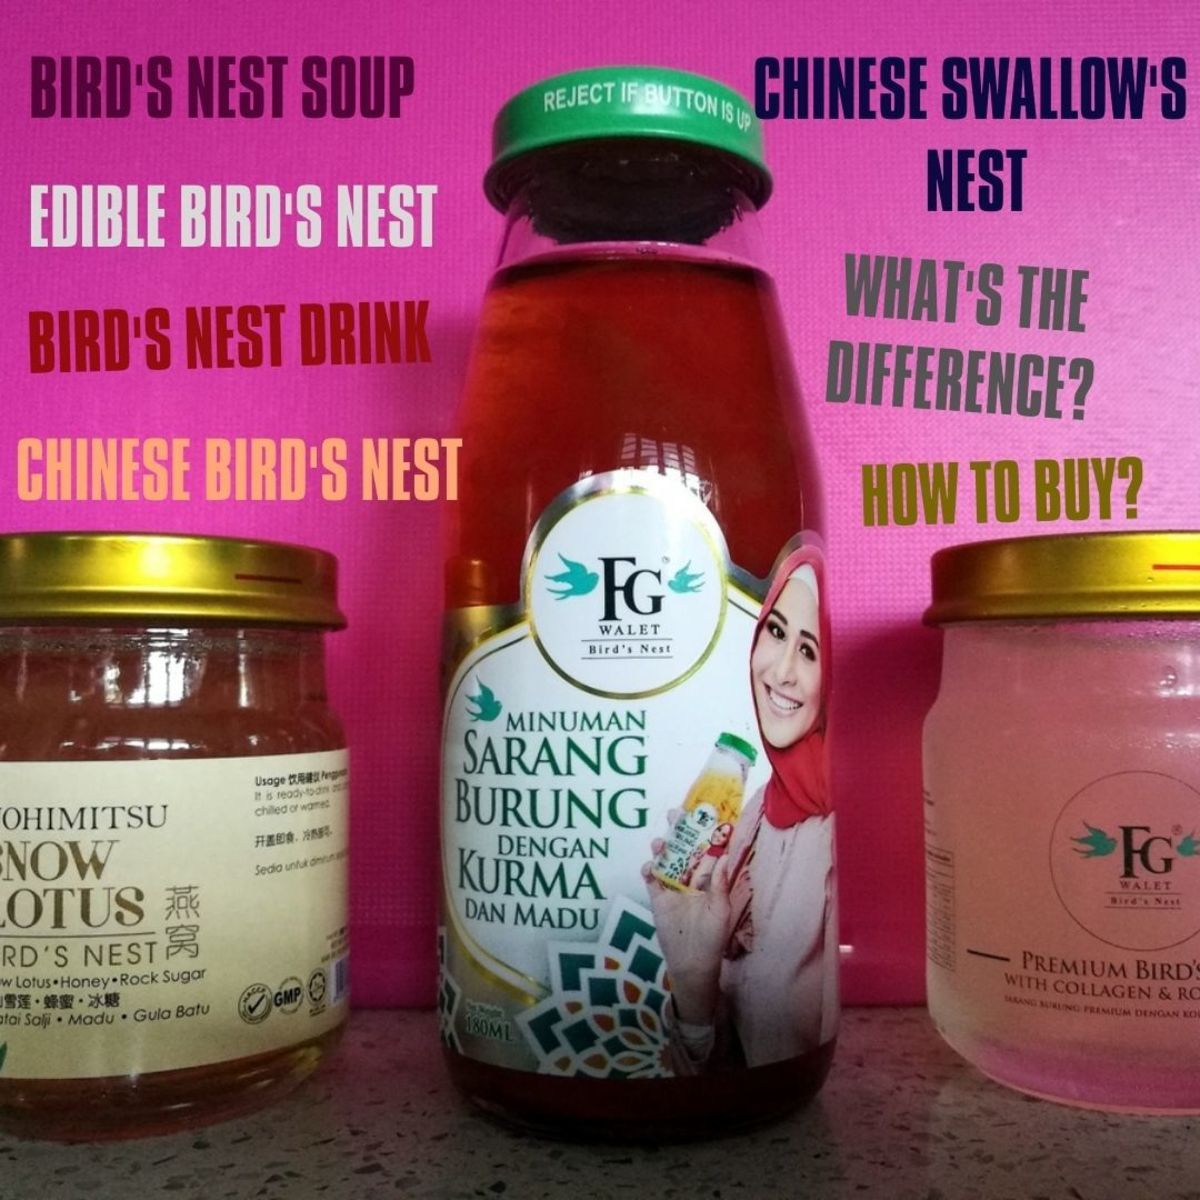 Edible Bird's Nest, Bird's Nest Soup, Bird's Nest Drink: What's the Difference? A Review